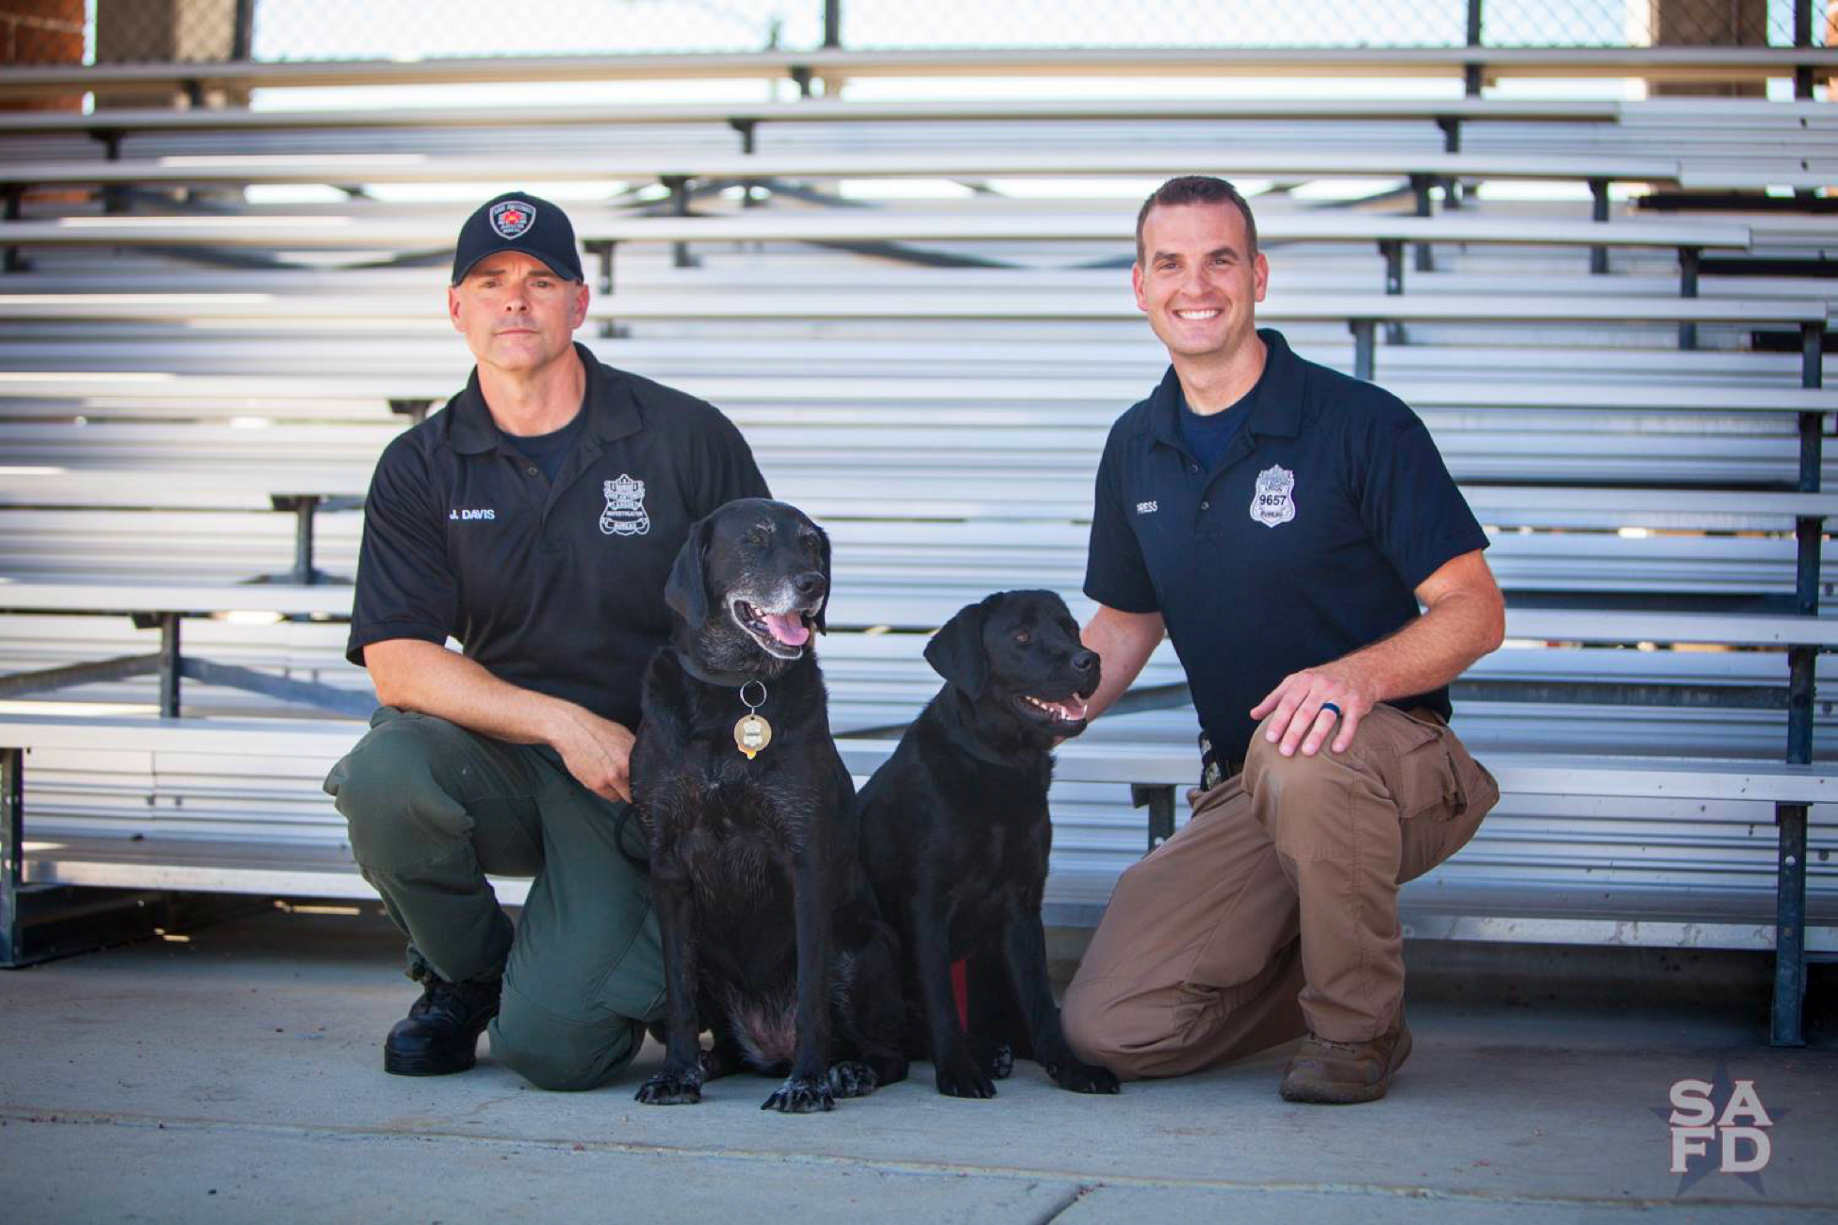 d3baec05ffb6 Sniffing out crime: Dogs assist SAFD with arson investigations